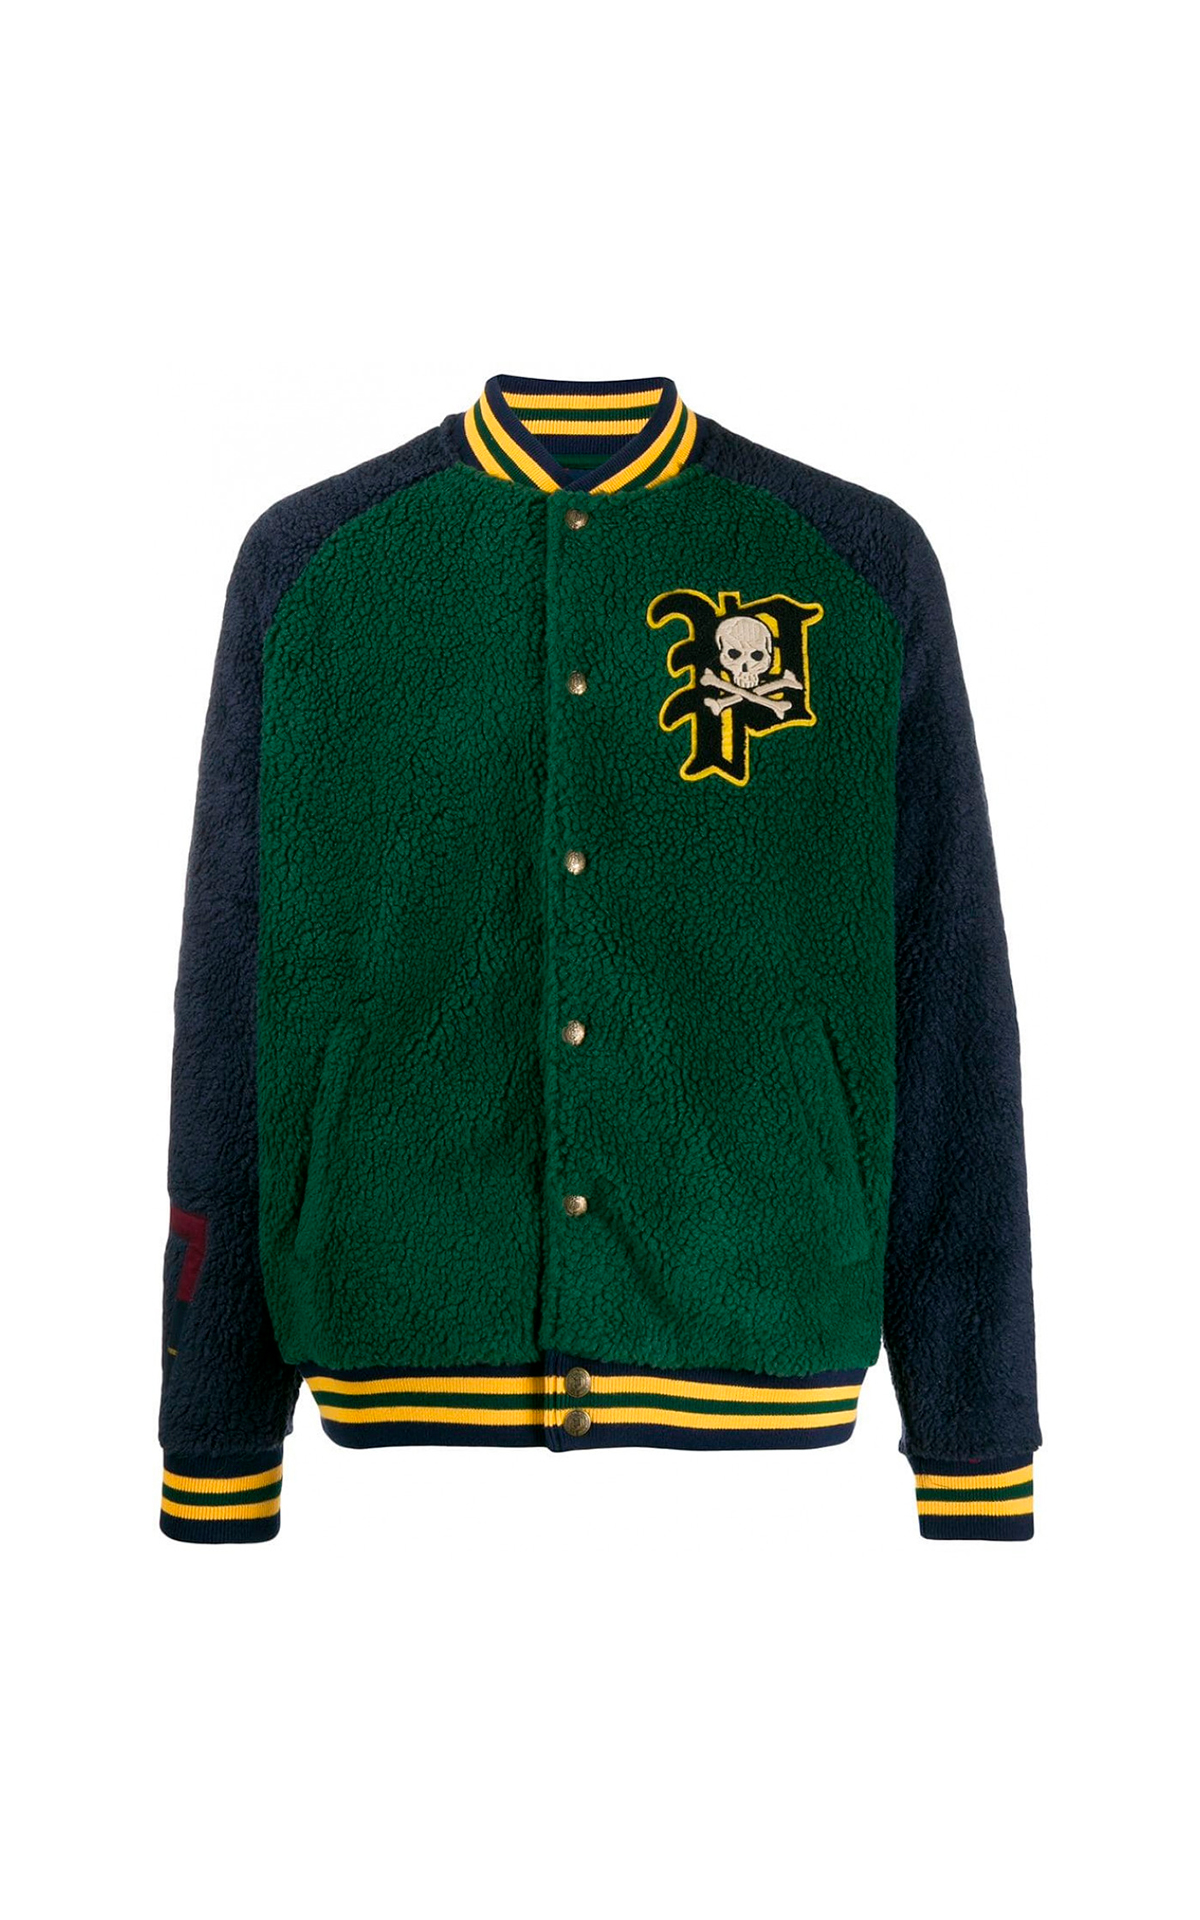 Green jacket Polo Ralph Lauren Men